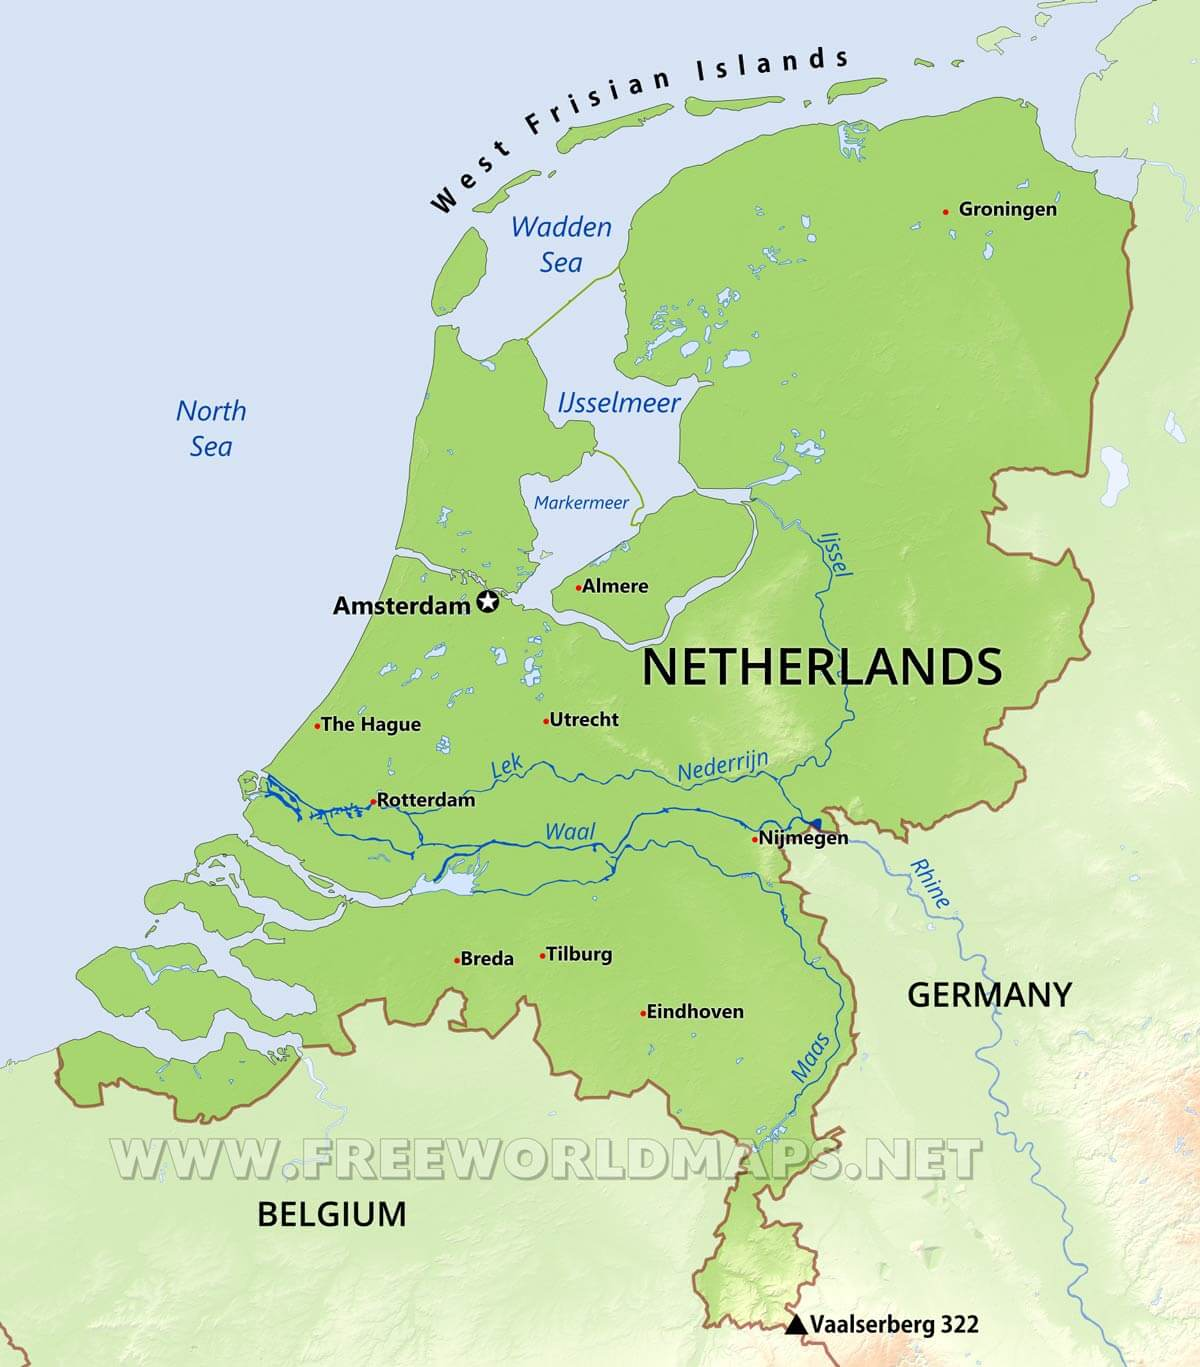 Map Of The Netherlands And Germany.The Netherlands Physical Map